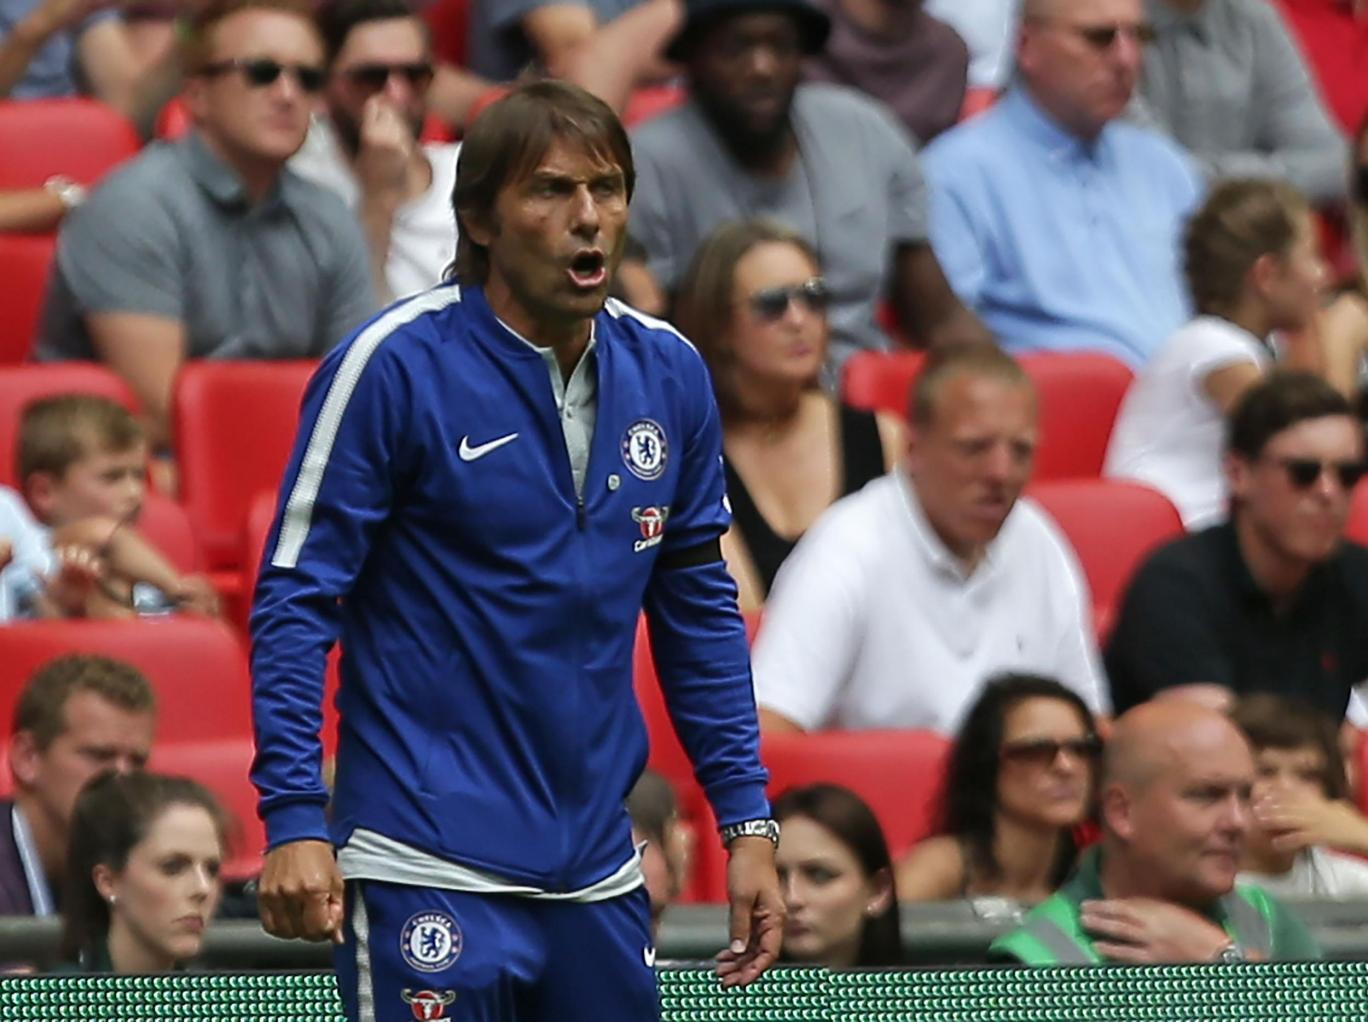 If Conte is still Chelsea manager in 12 months' time I would be 'very surprised', – Carragher